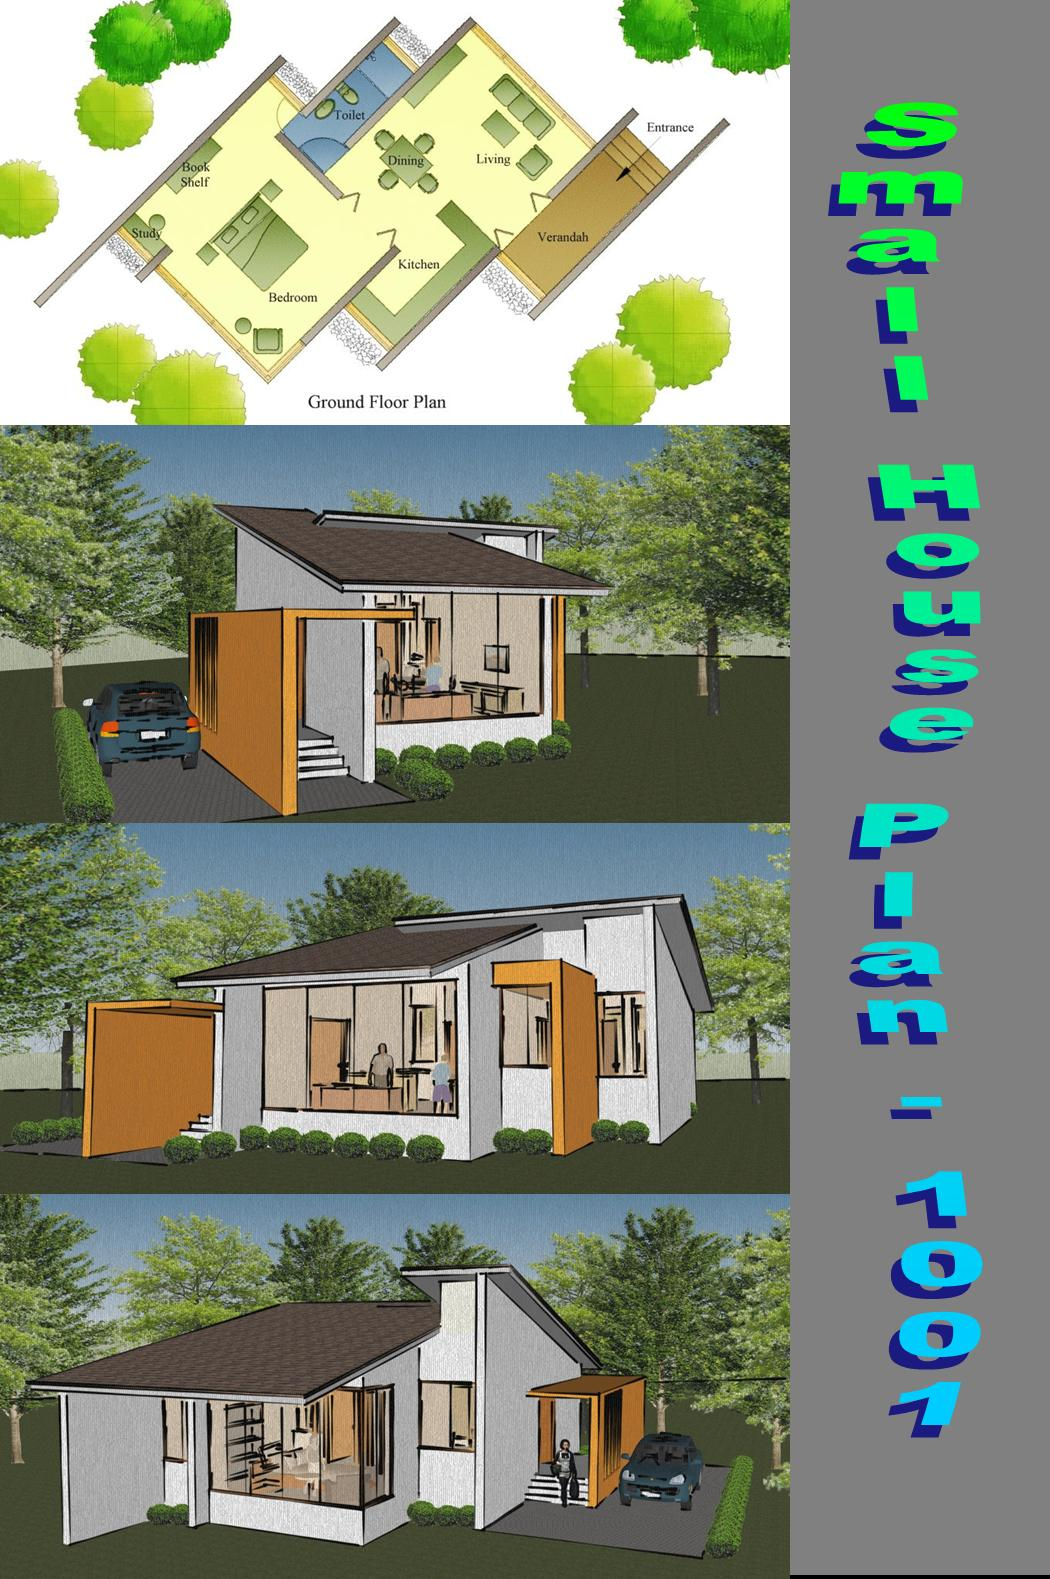 Home plans in india 5 best small home plans from for Best small house plans